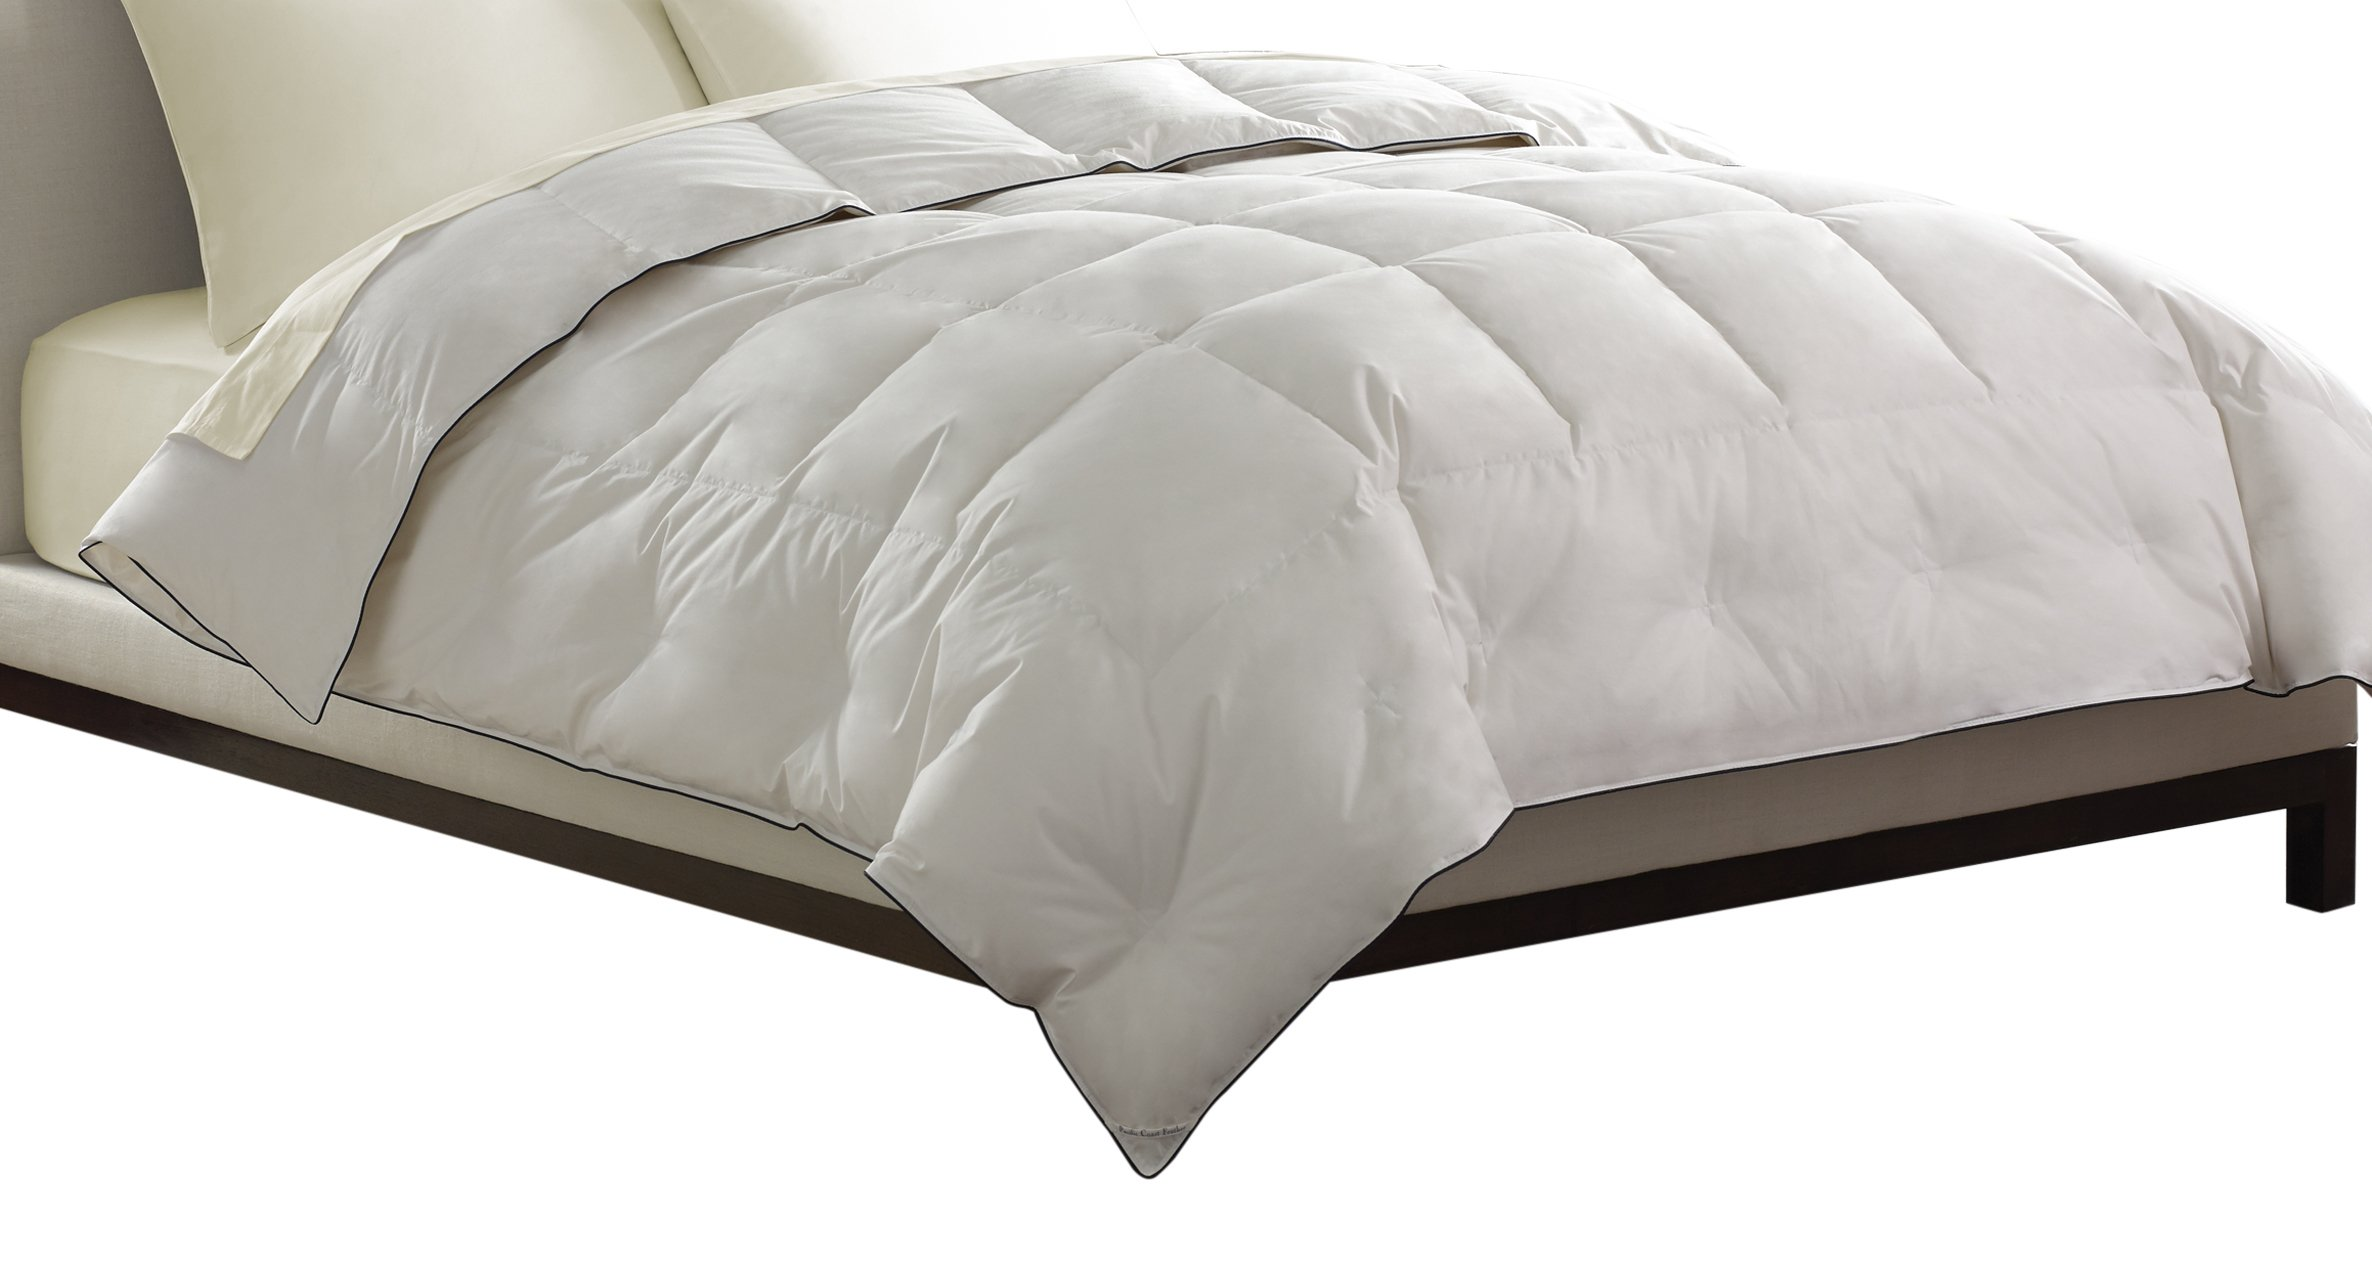 Pacific Coast Feather Company 67823 Light Warmth Down Comforter, Cotton Cover, Hypoallergenic, King